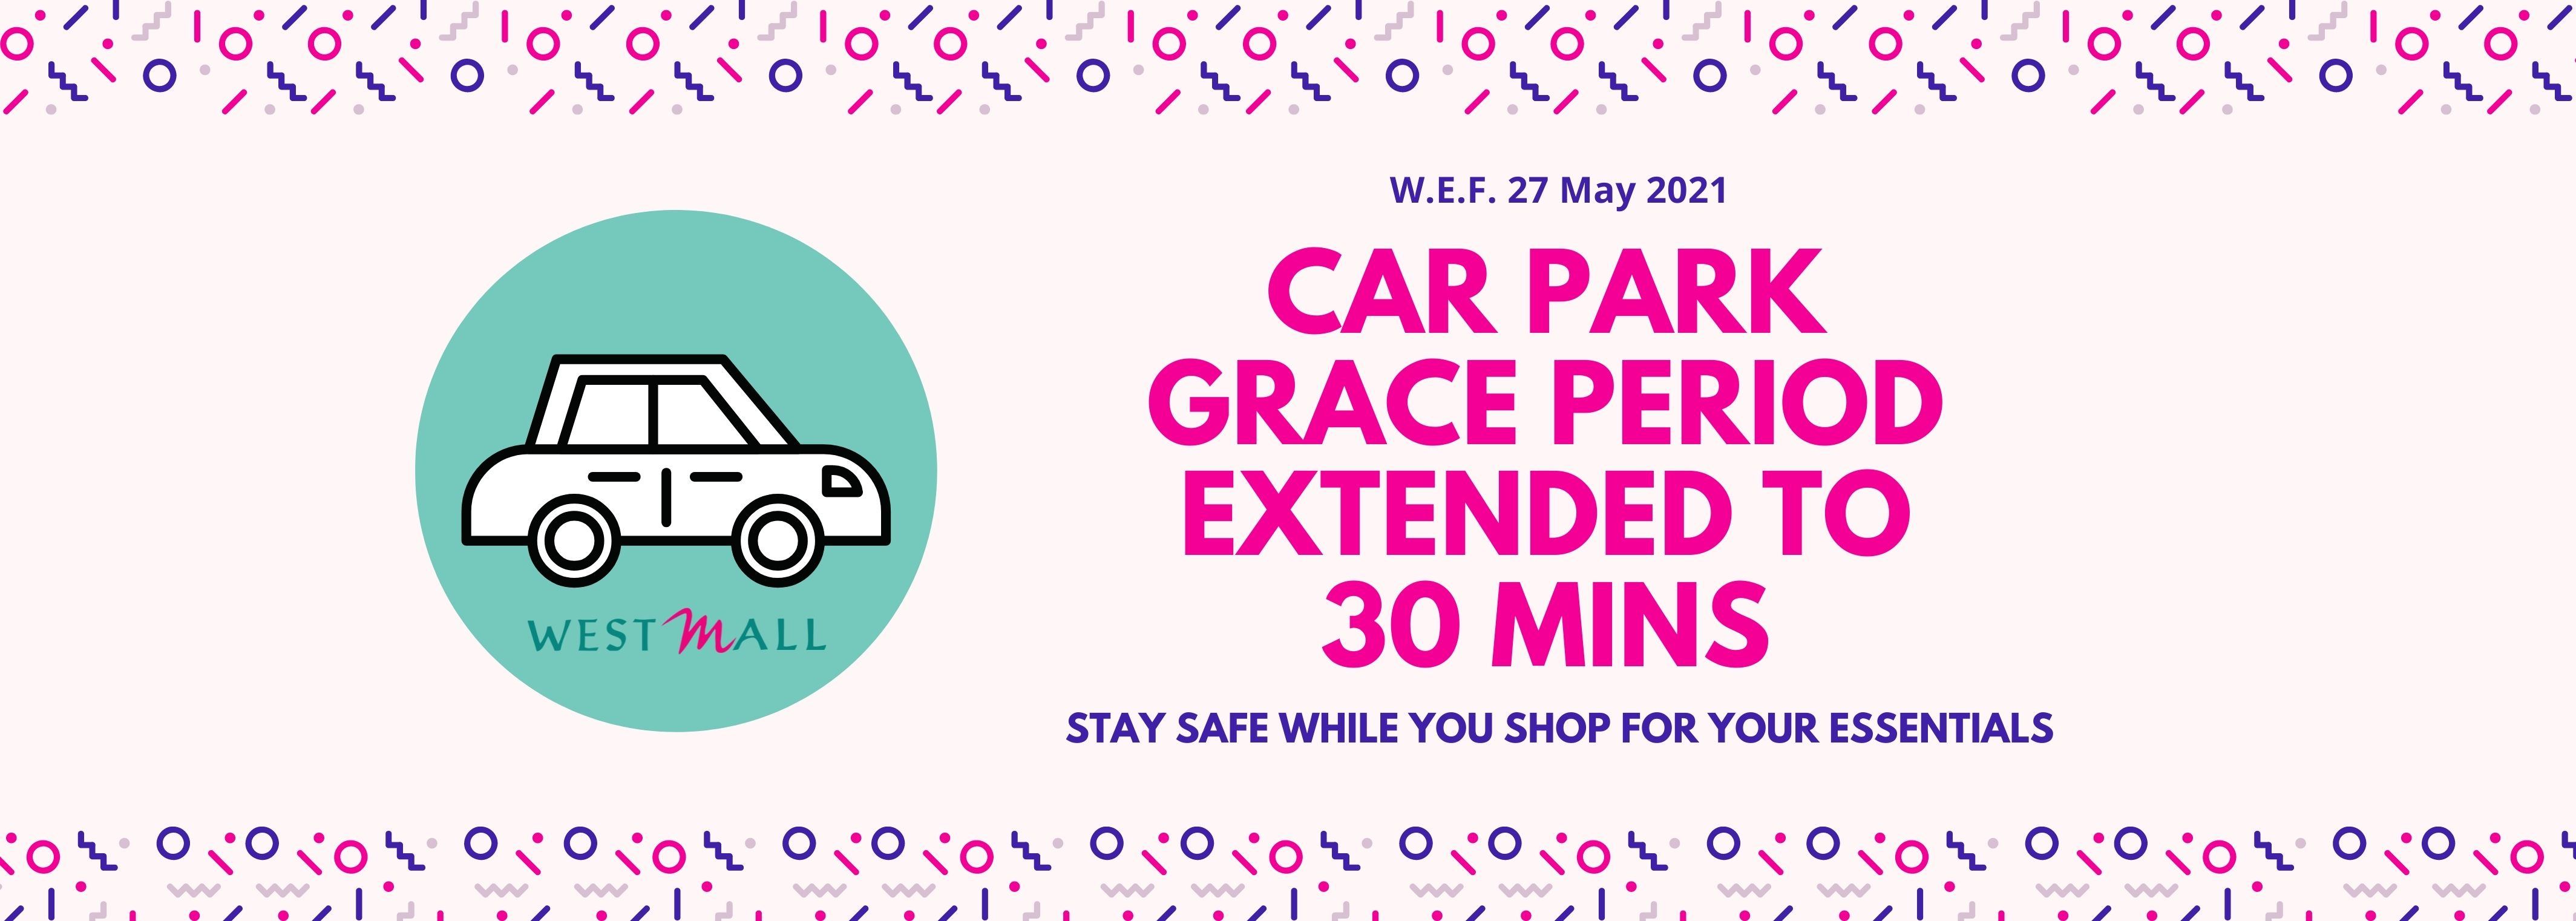 Car Park Grace Period Extended to 30 MINS